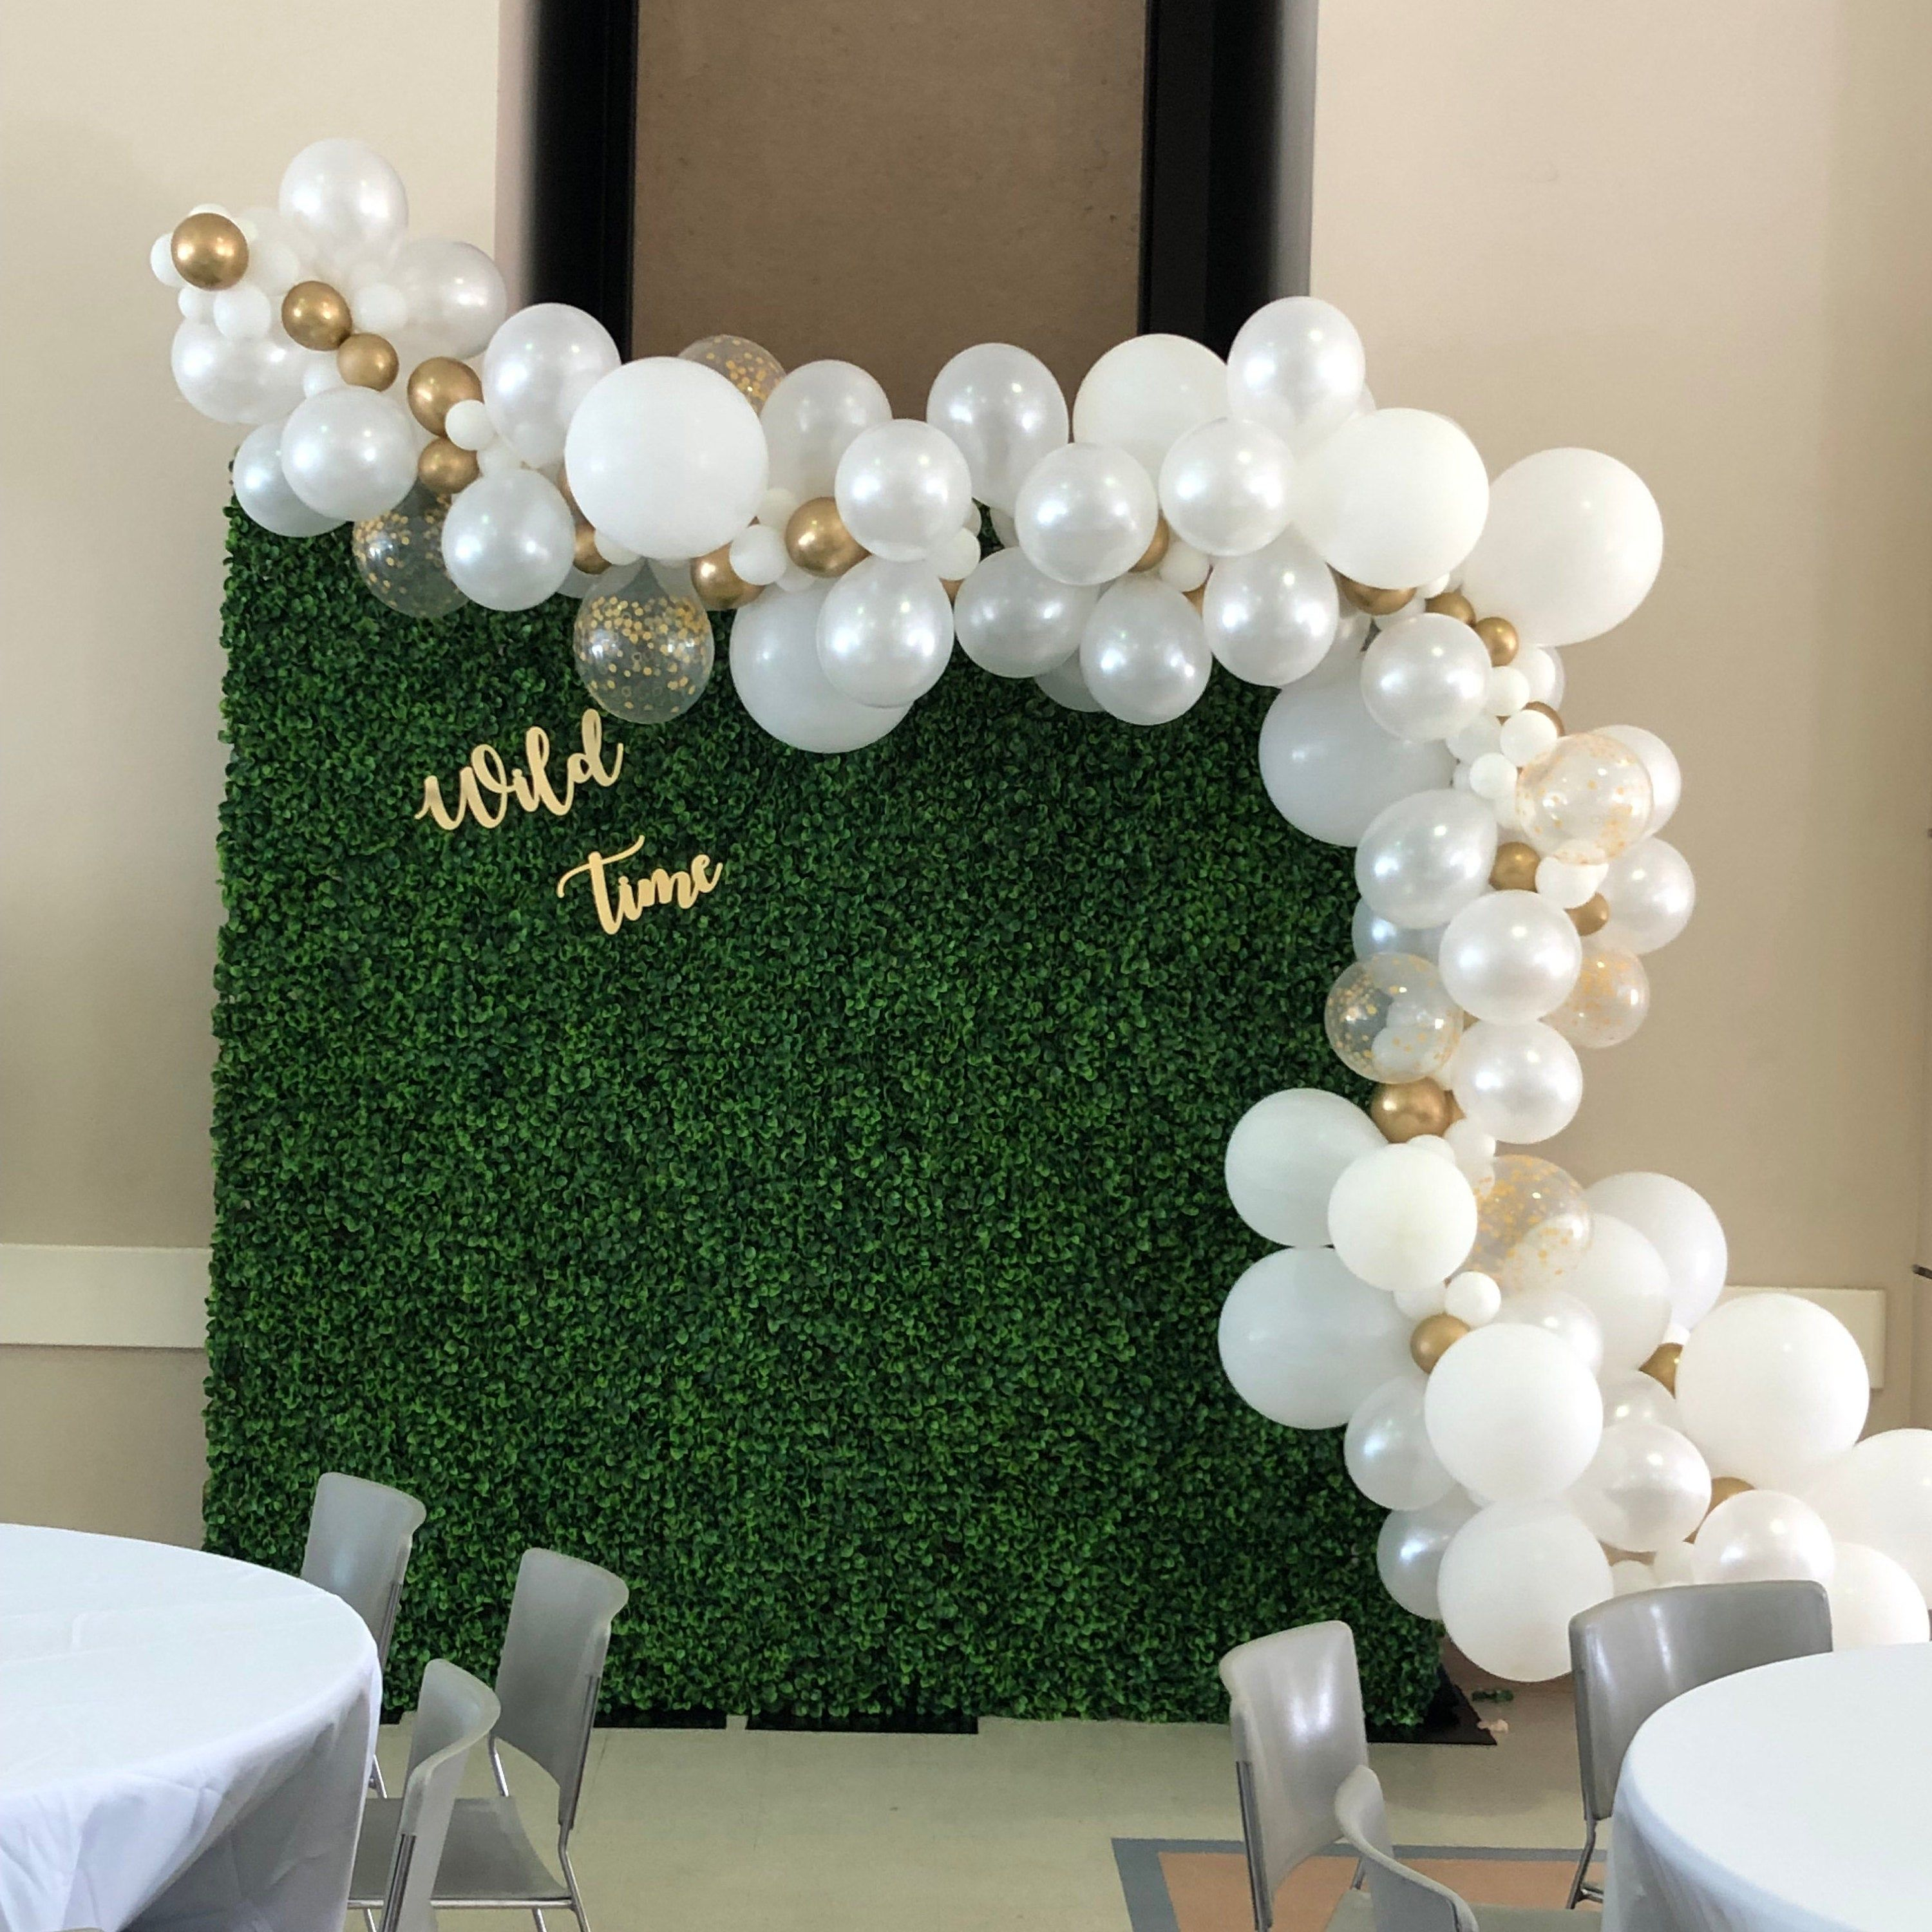 Boxwood Backdrop Rent Only Artificial Greenery Backdrop Etsy In 2020 Boxwood Backdrop Picture Backdrops Wall Backdrops